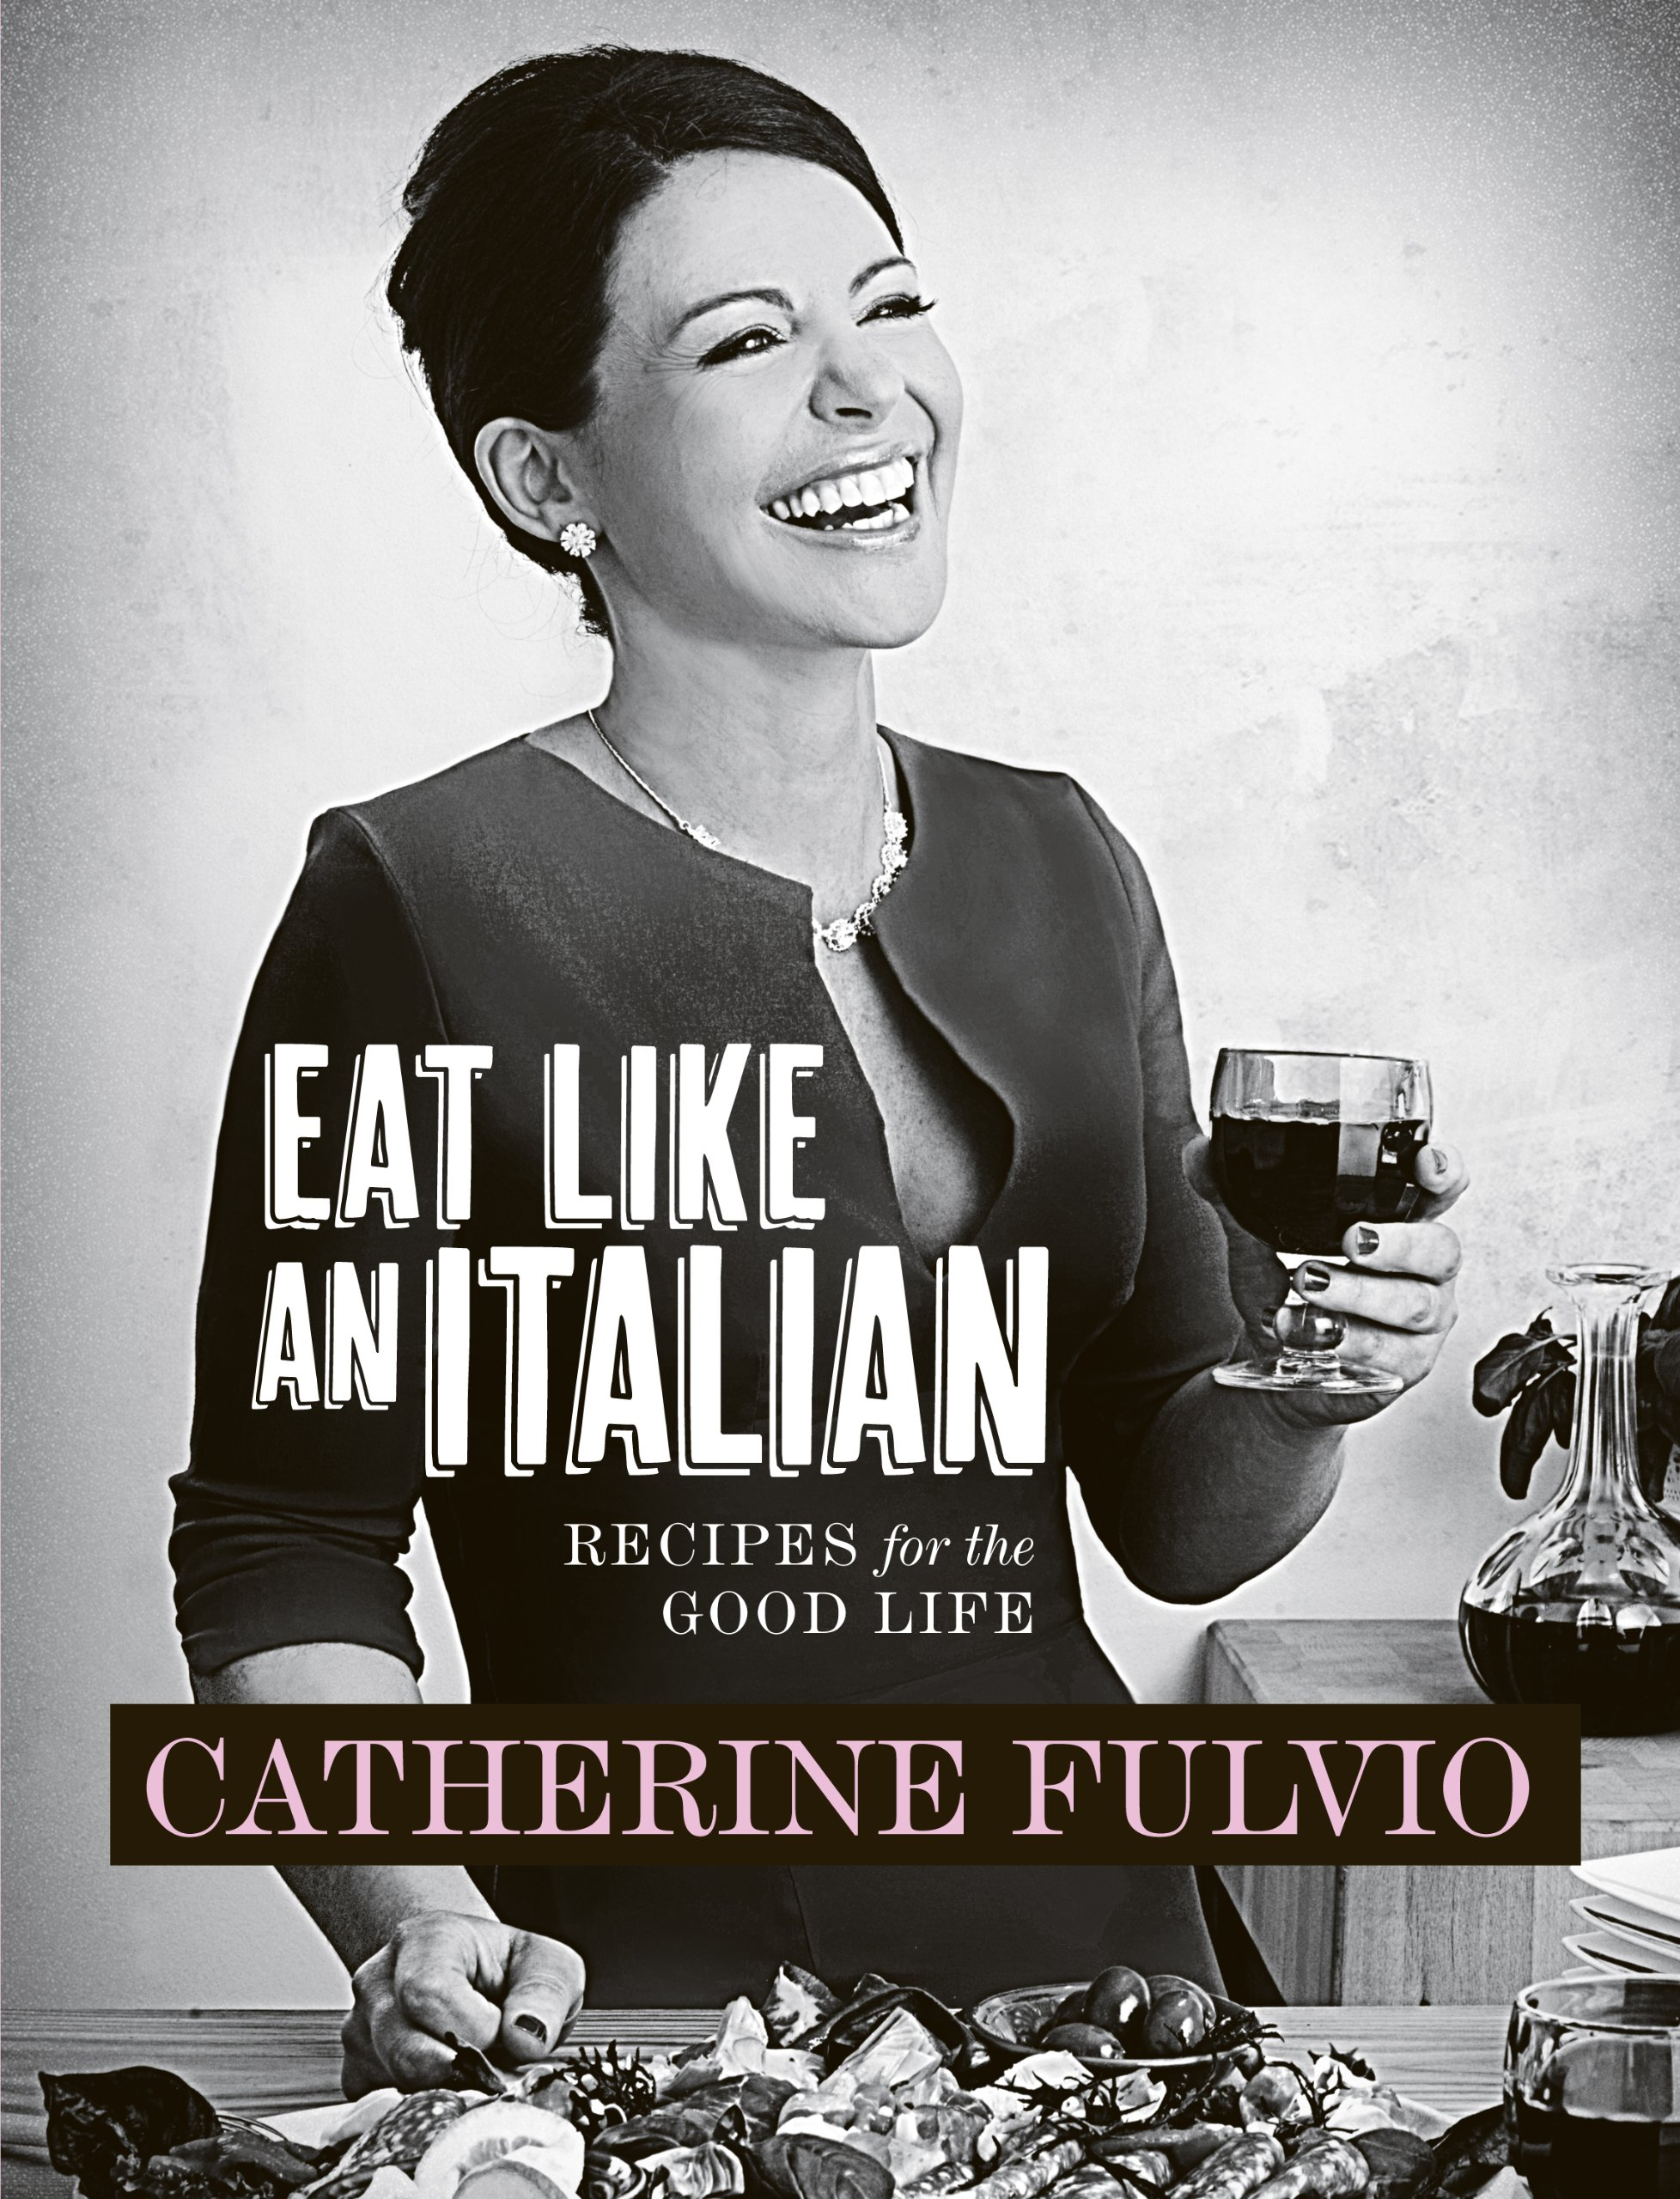 Image OfCatherine Fulvio's Eat Like An Italian: Recipes For The Good Life From Catherine Fulvio